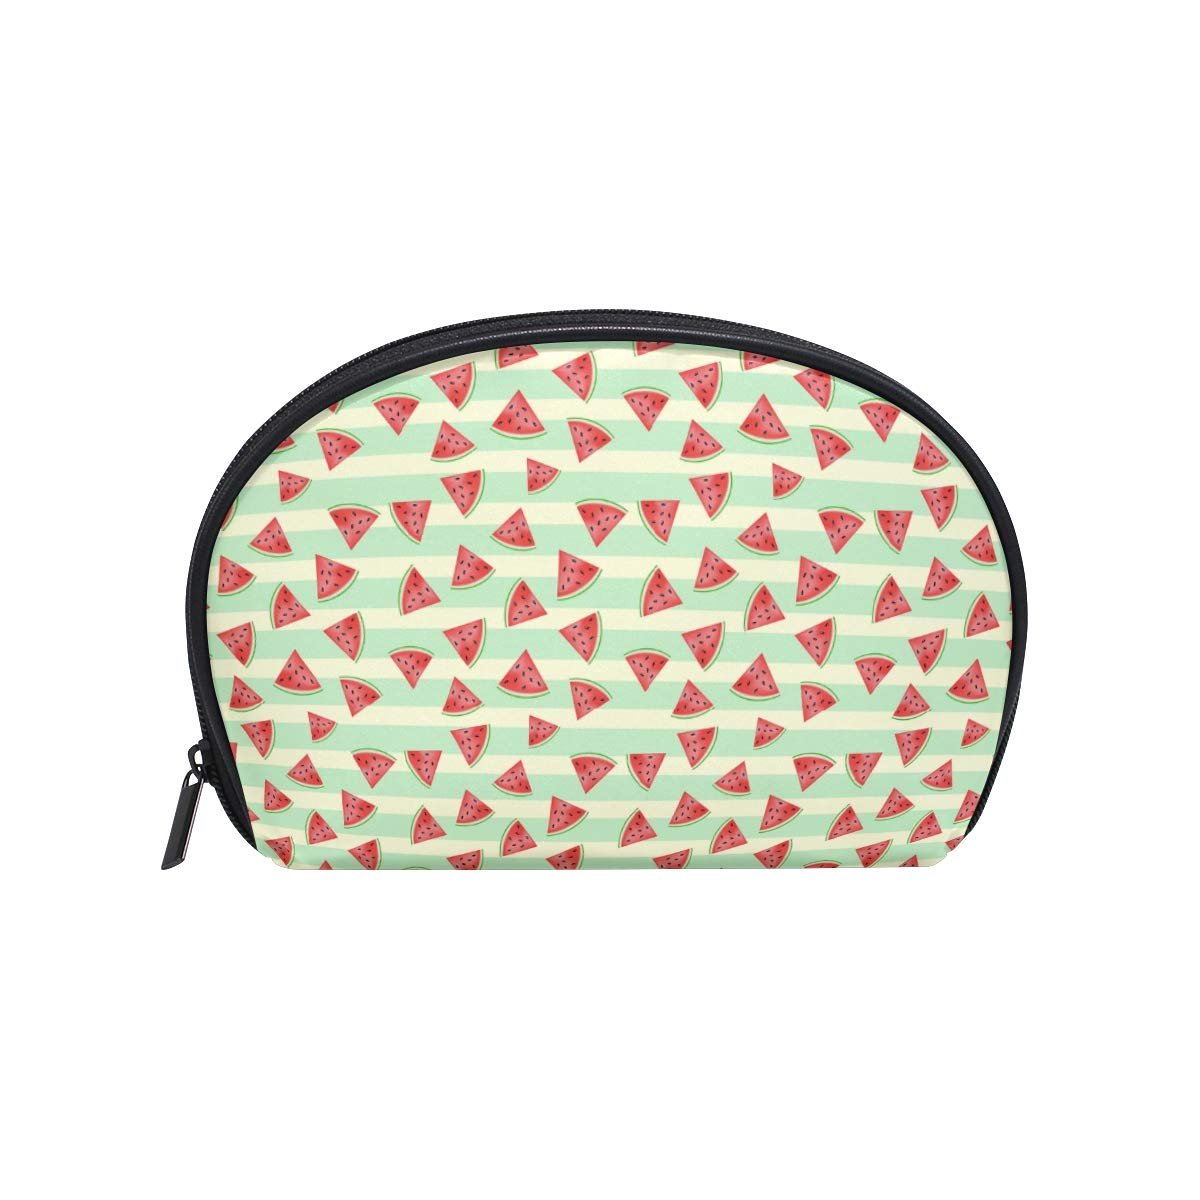 dd4b30880a6f Amazon.com : Funny Watermelon Bright Stripe Small Cosmetic Bag For ...